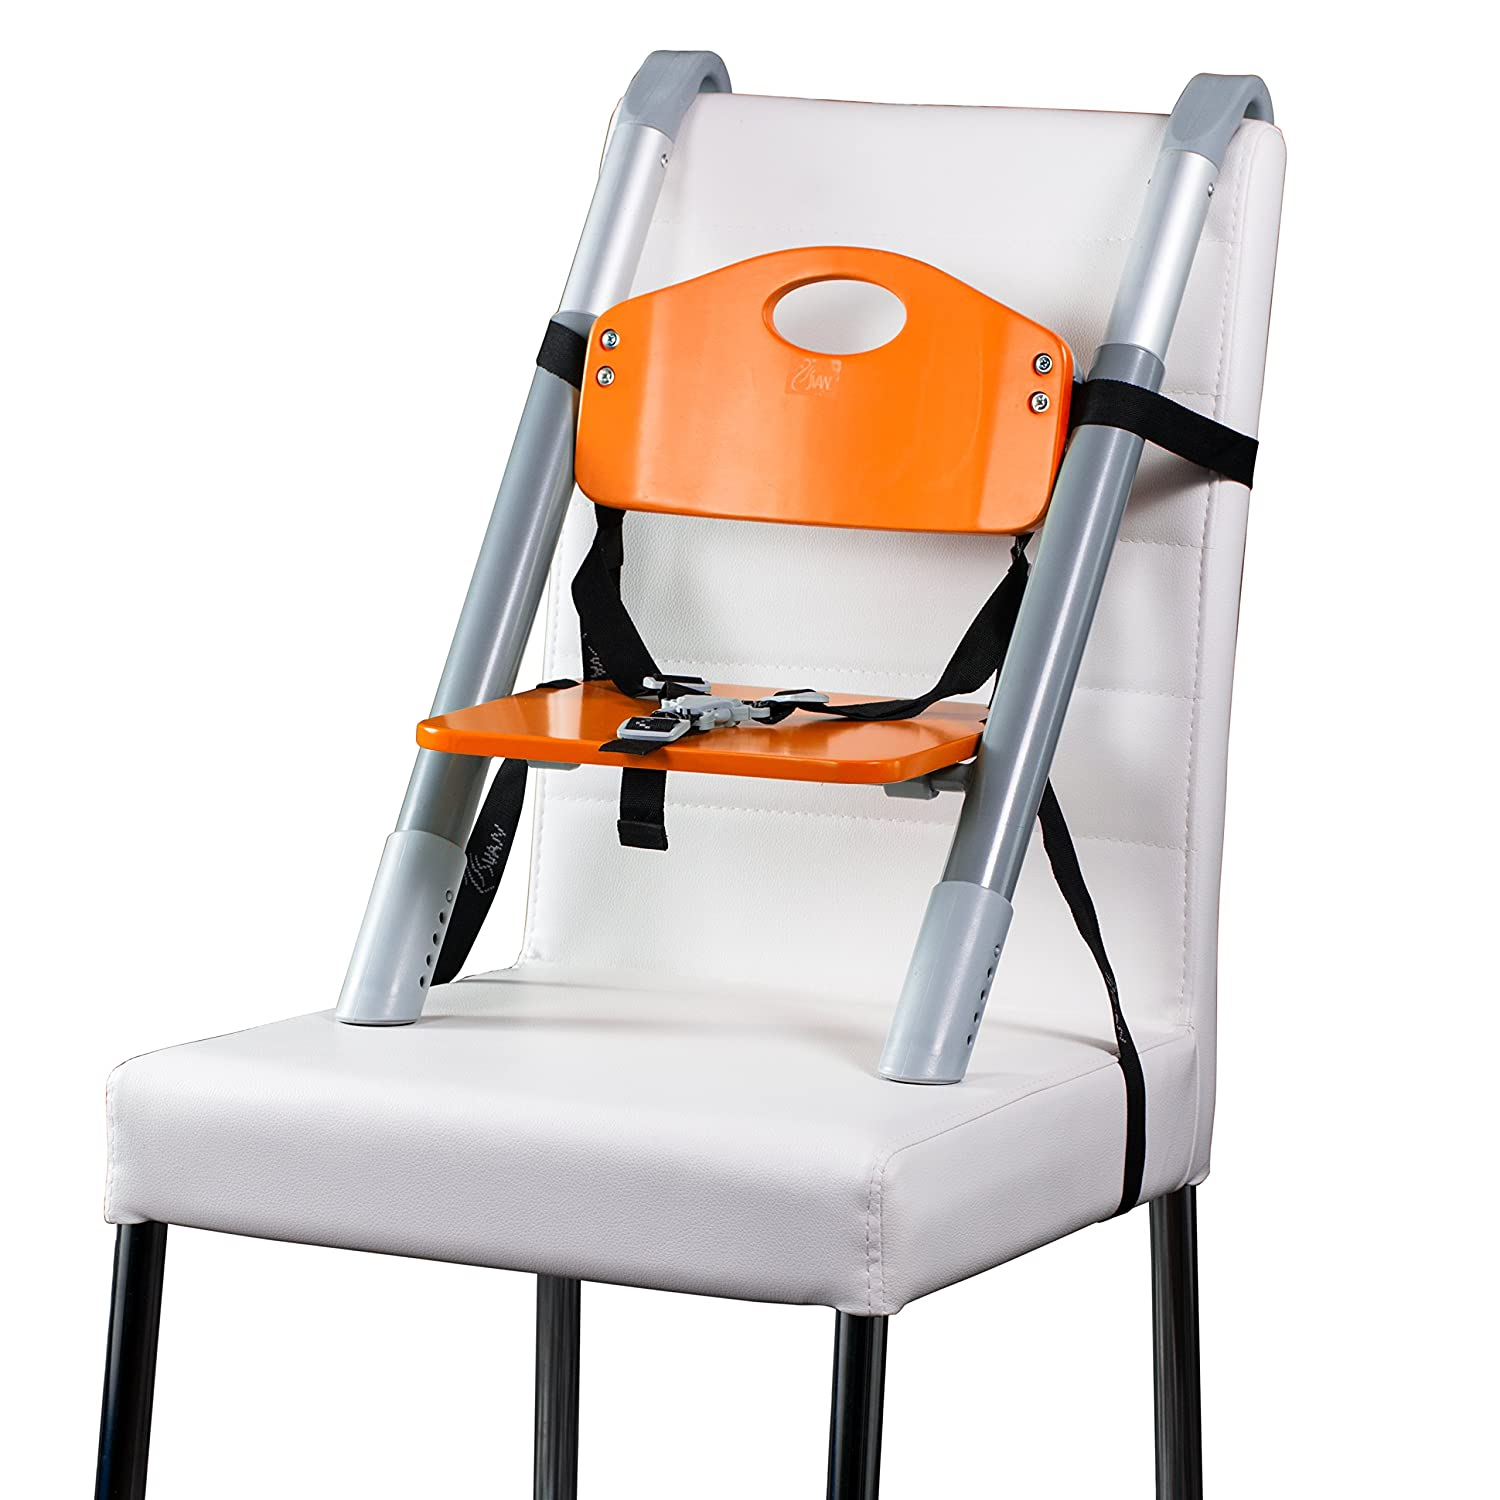 Svan Lyft High Chair Booster Seat 18 Mo to 5 Yrs Adjusts Easily to Most Chairs Lime Booster Seat